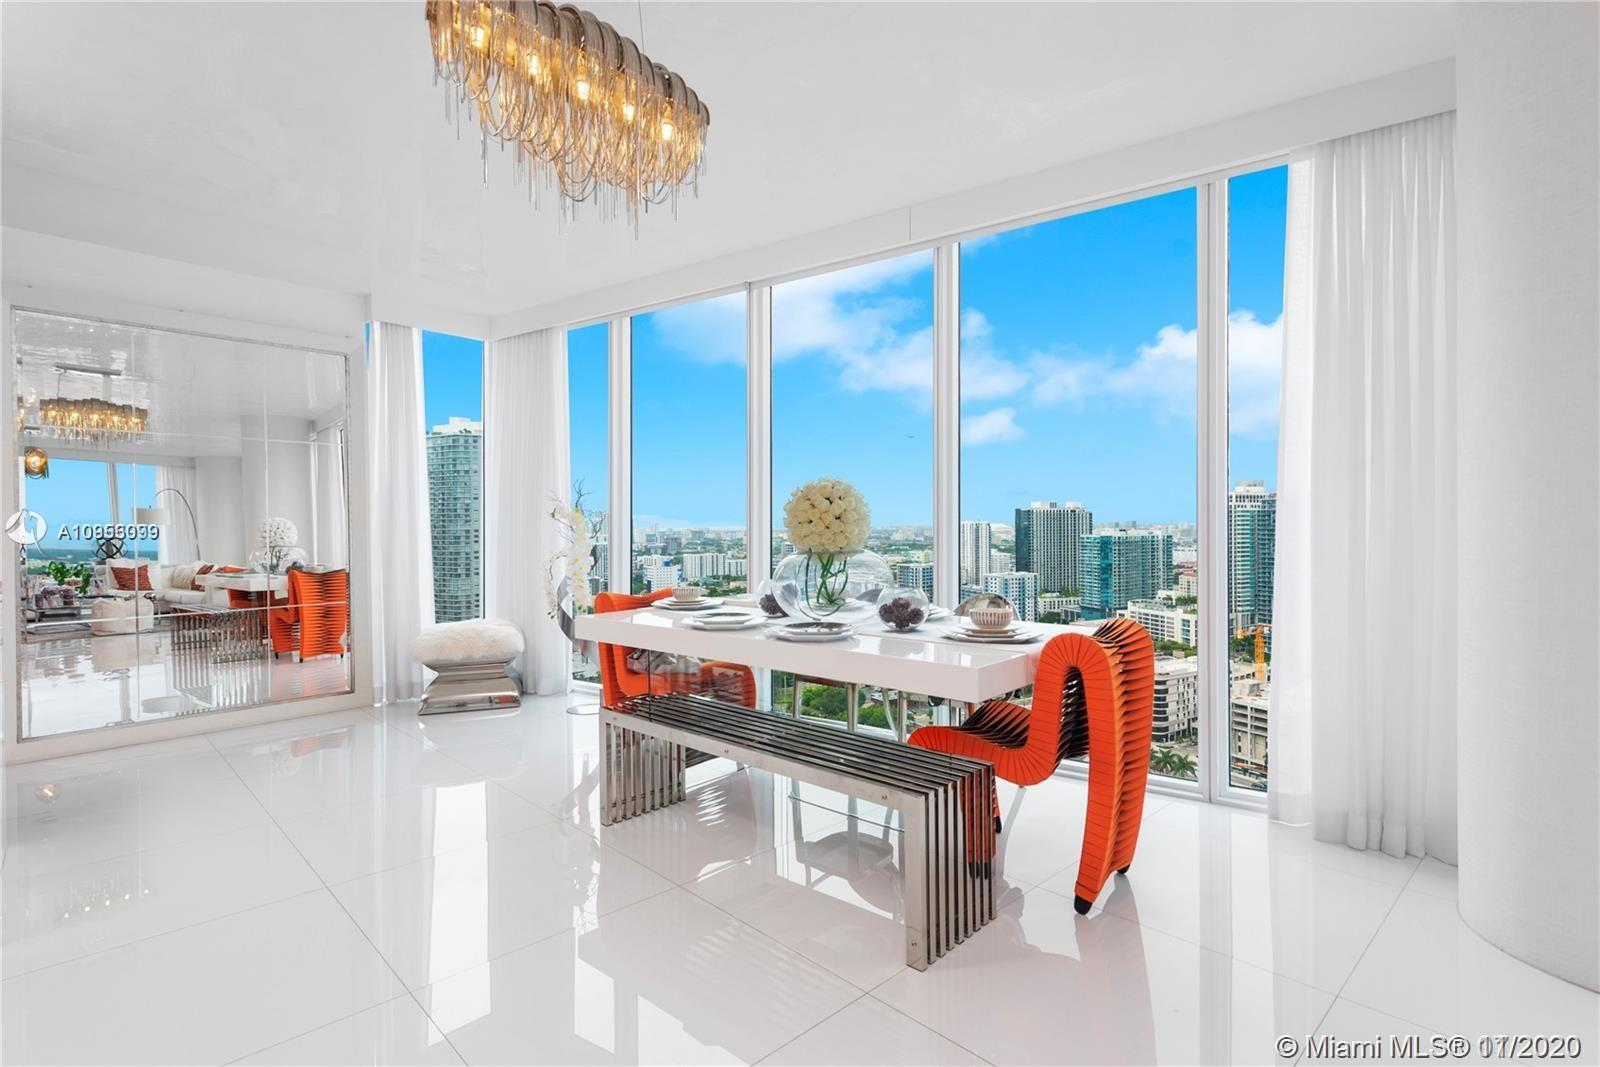 Absolutely Stunning Apartment on the 30th floor. In the Heart of midtown where you will have it all!